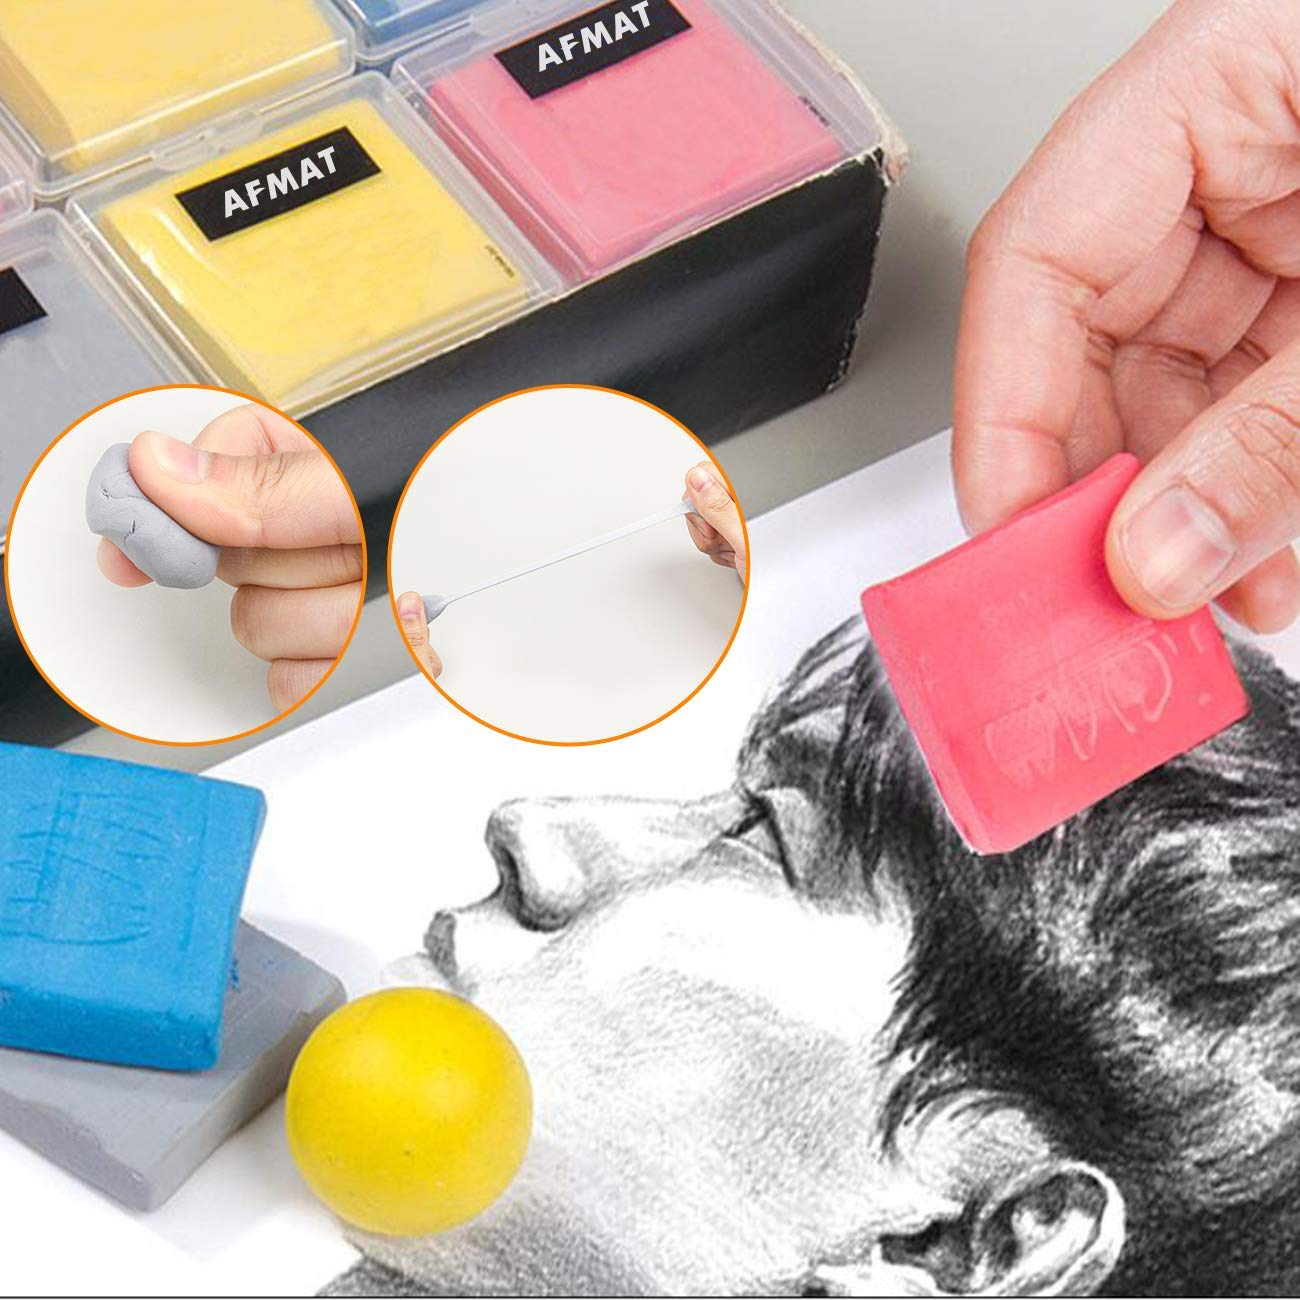 Drawing Art Kneaded Erasers Assorted Colors No Smudge Eraser Knead Erasers Pastels-Moldable Putty Rubber Large Kneaded Rubber Erasers for Drawing Sketching Supplies for Artists-6 Pack Charcoal